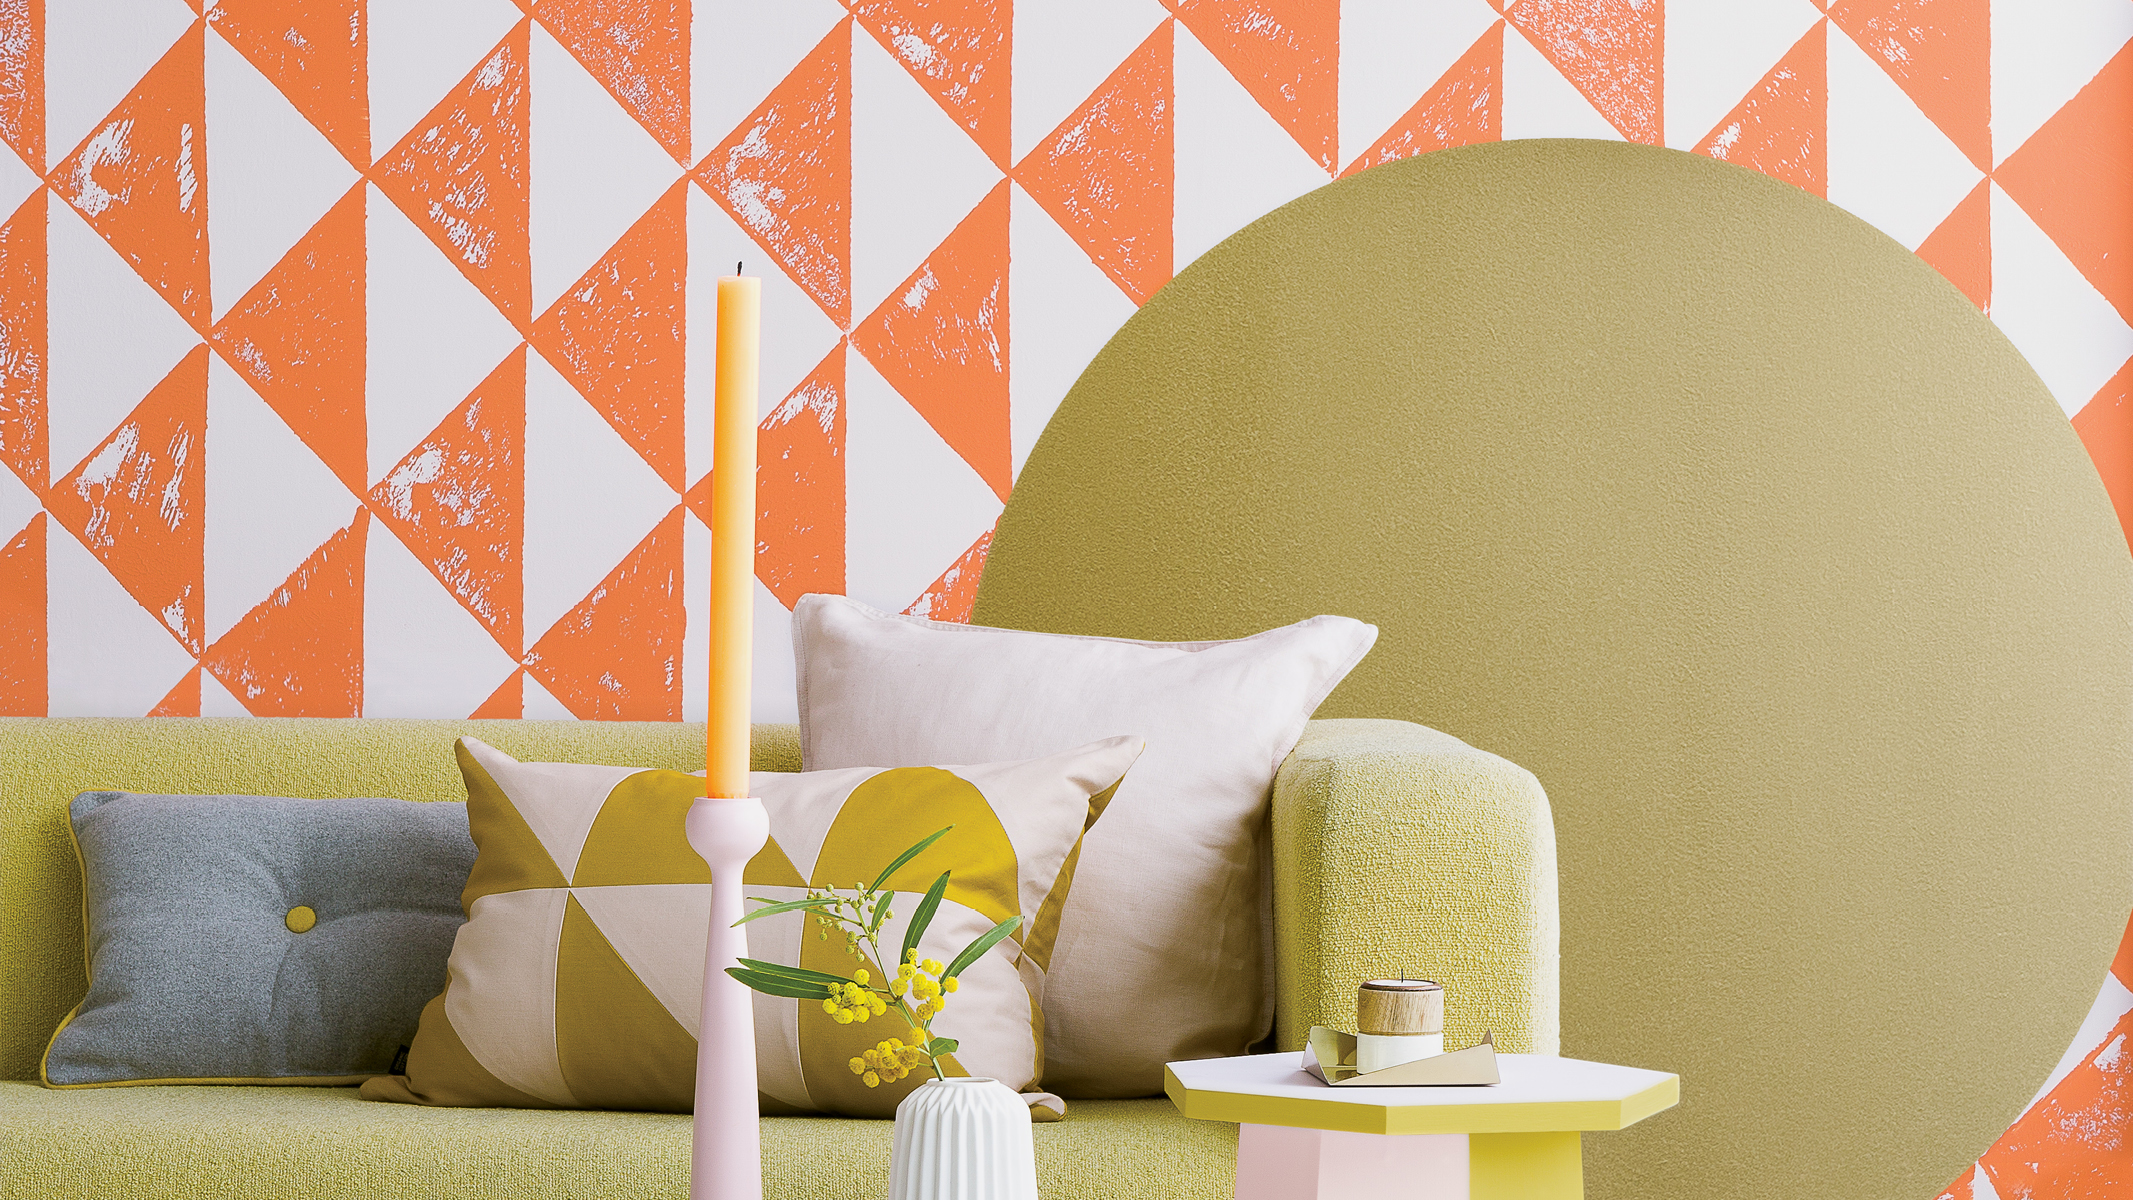 These graphic diamonds enhance the sense of order – albeit playful - in this living room, although it's a decorating ideas that's not for the faint-hearted!